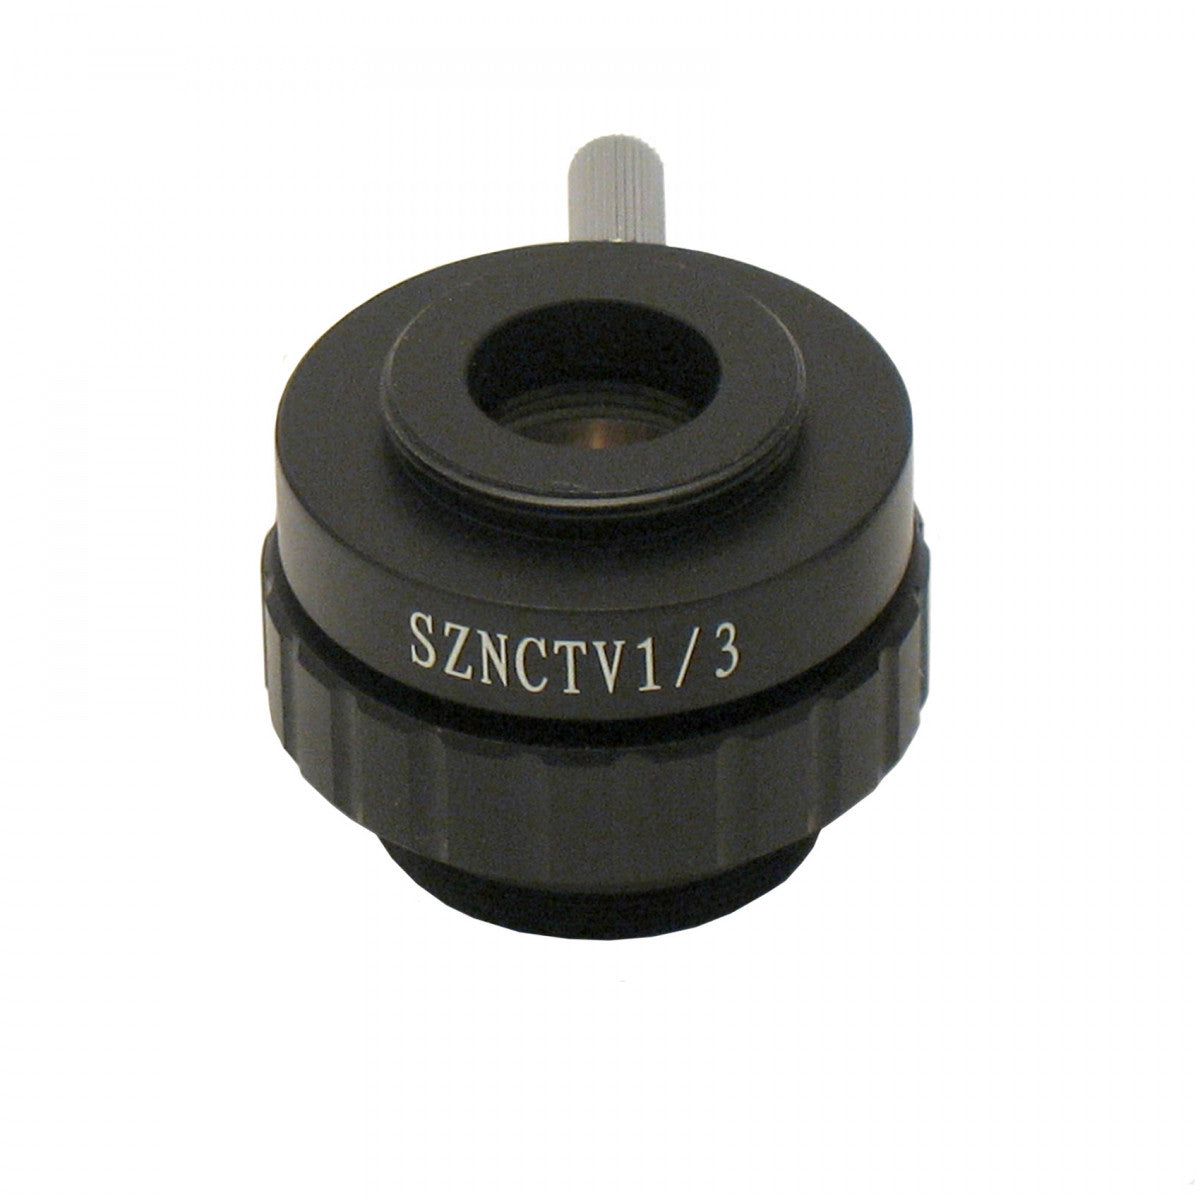 C-Mount Adapters for Accu-Scope 3075 / 3076 Microscope Series